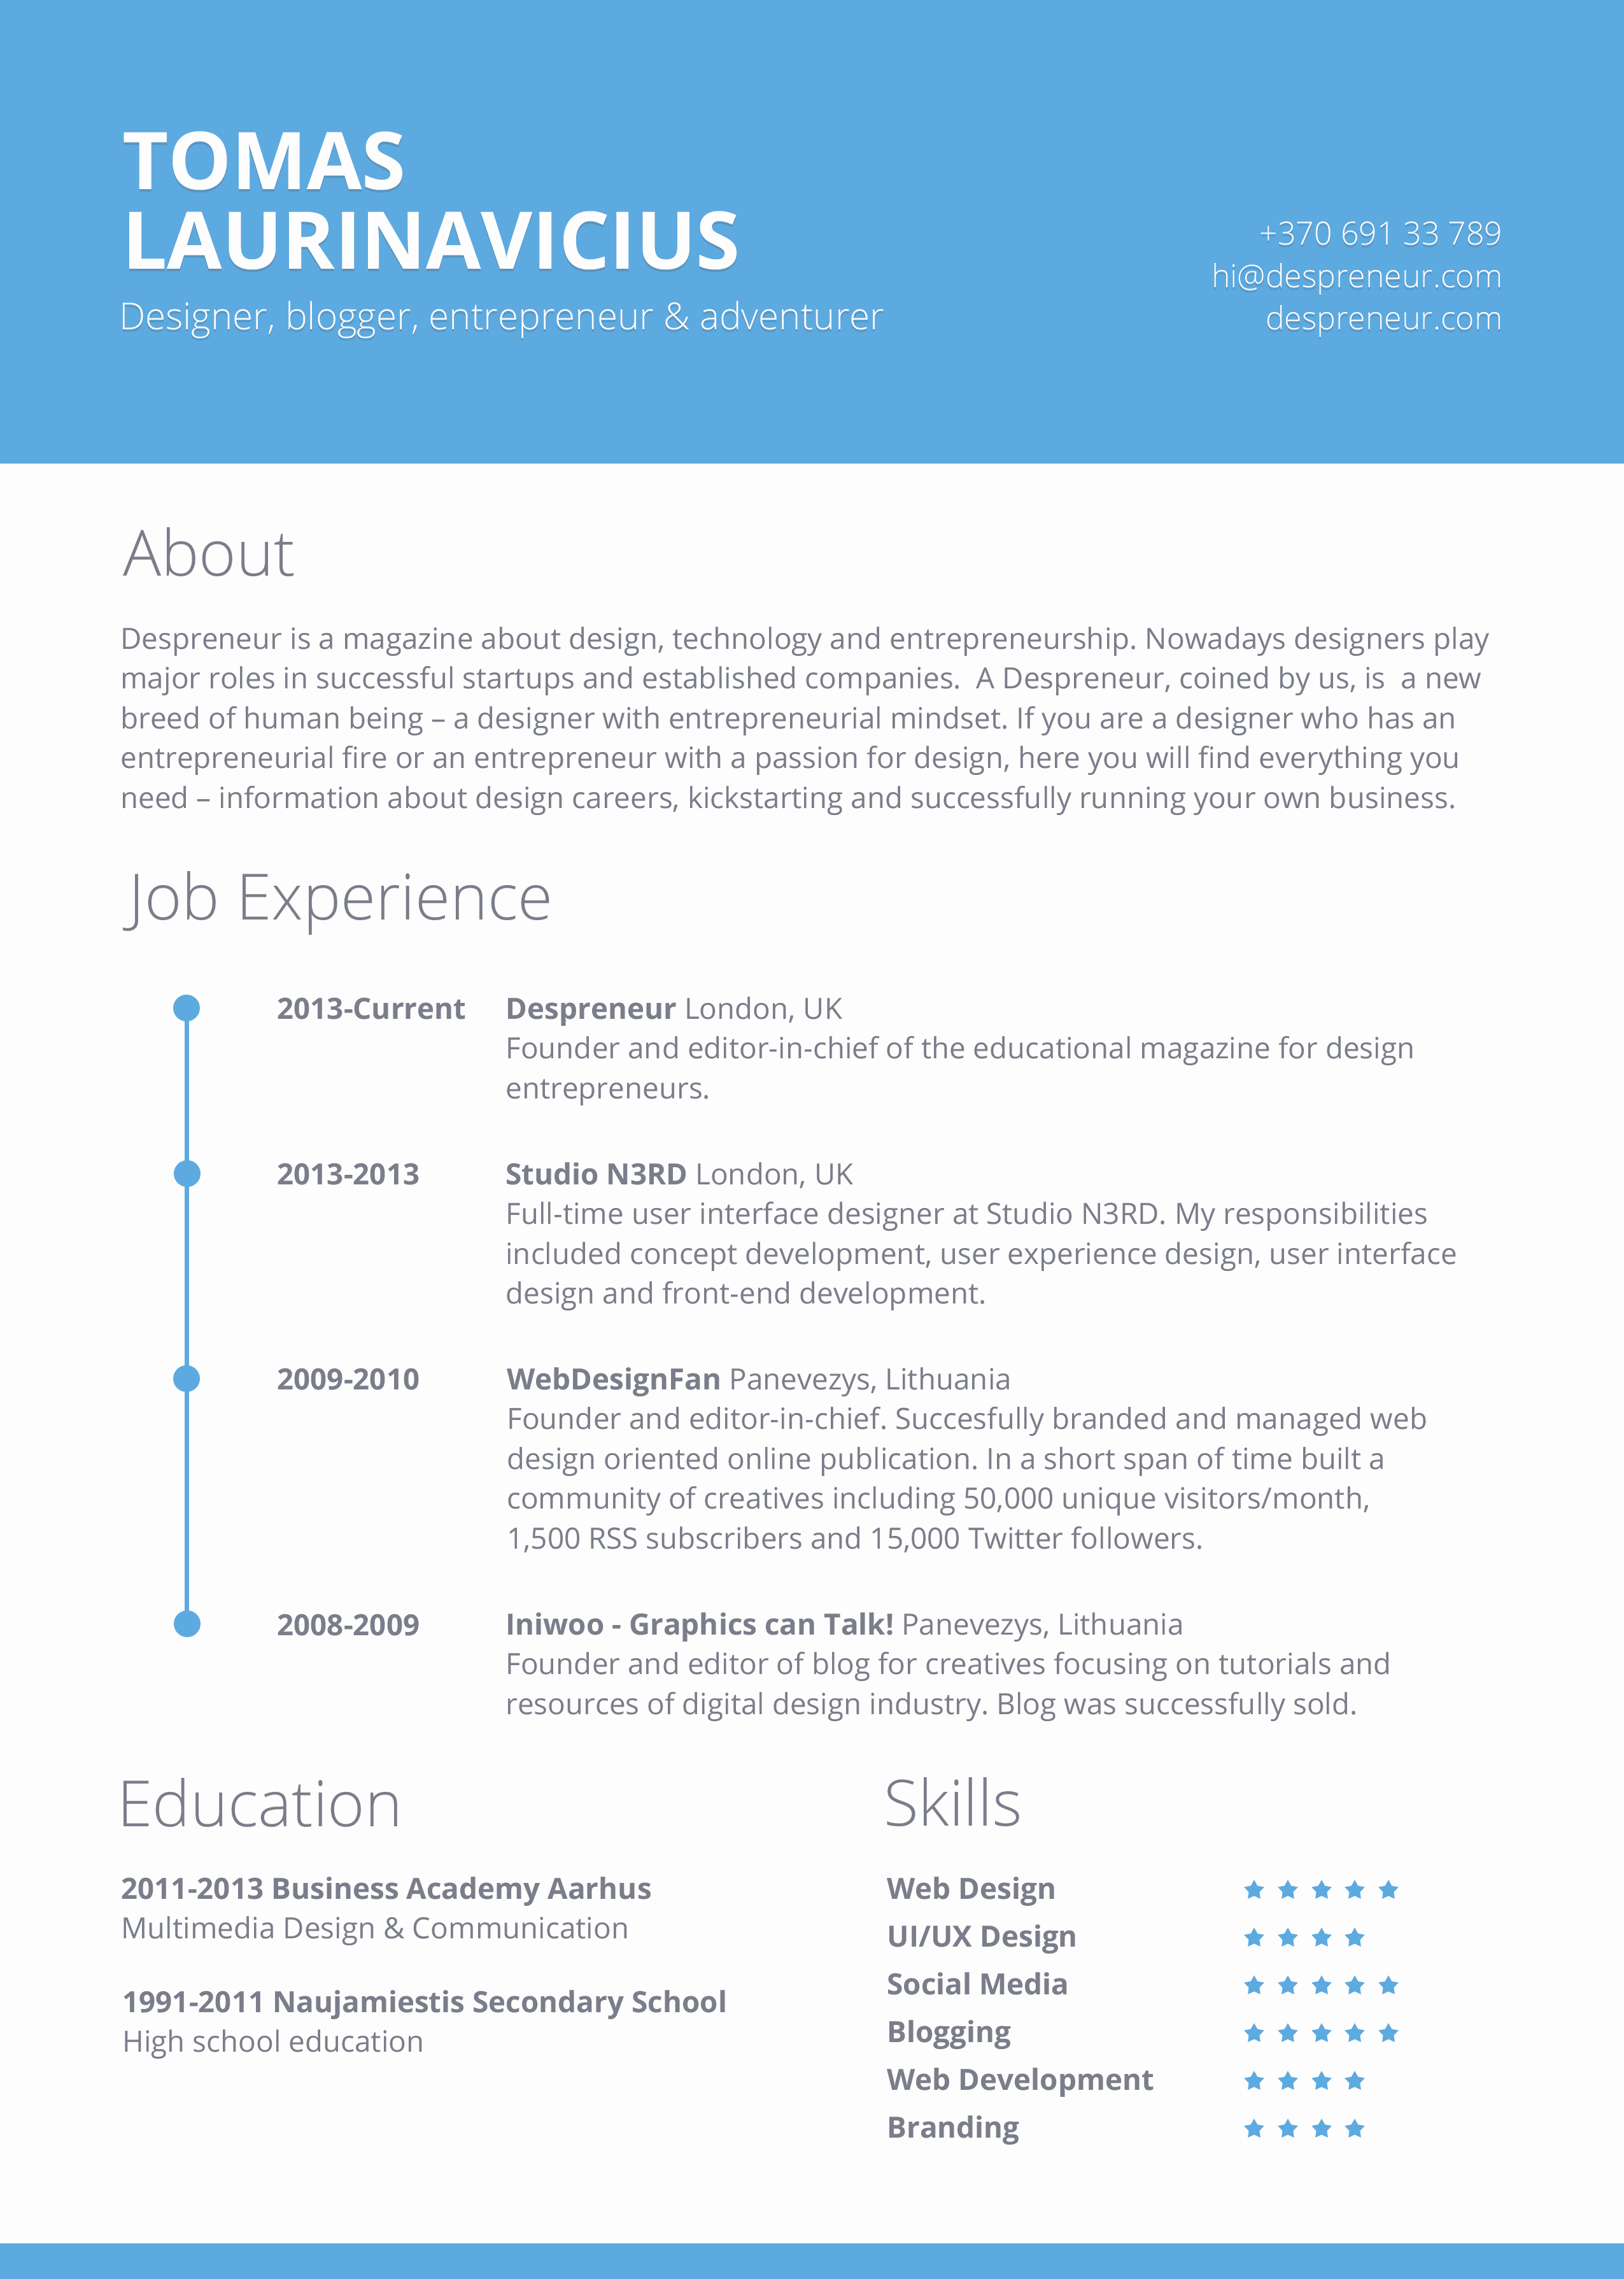 Where to Find Resume Templates Elegant 40 Resume Template Designs